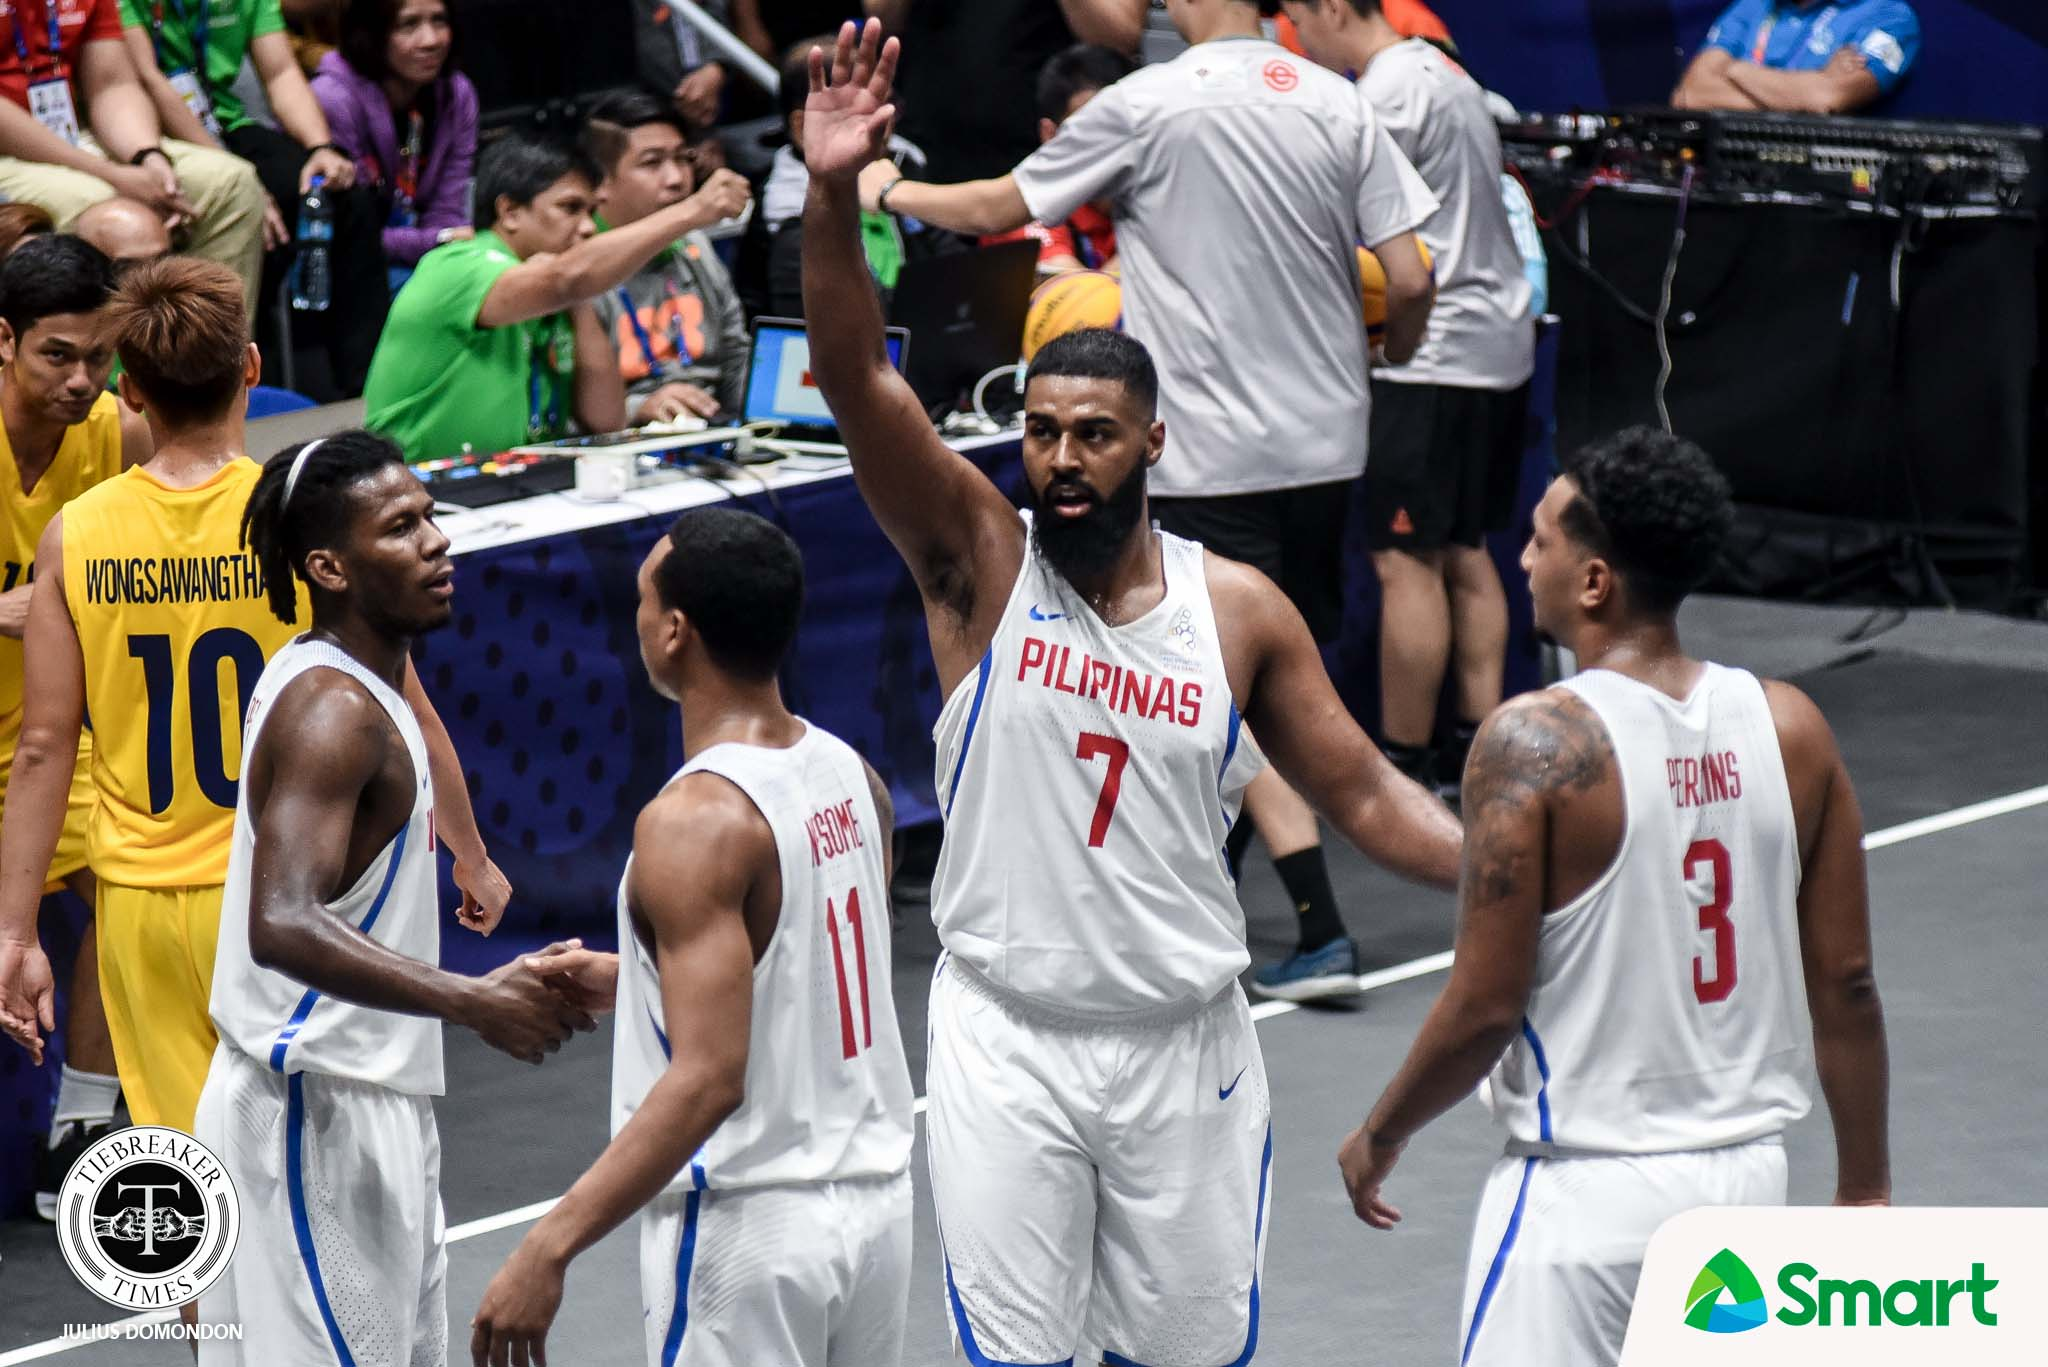 Tiebreaker Times Gilas Men's 3x3 send Thailand to submission, barge into SEA Games Finals 2019 SEA Games 3x3 Basketball Gilas Pilipinas News  Thailand (Basketball) Mo Tautuaa Jason Perkins CJ Perez Chris Newsome 2019 SEA Games - 3x3 Basketball 2019 SEA Games